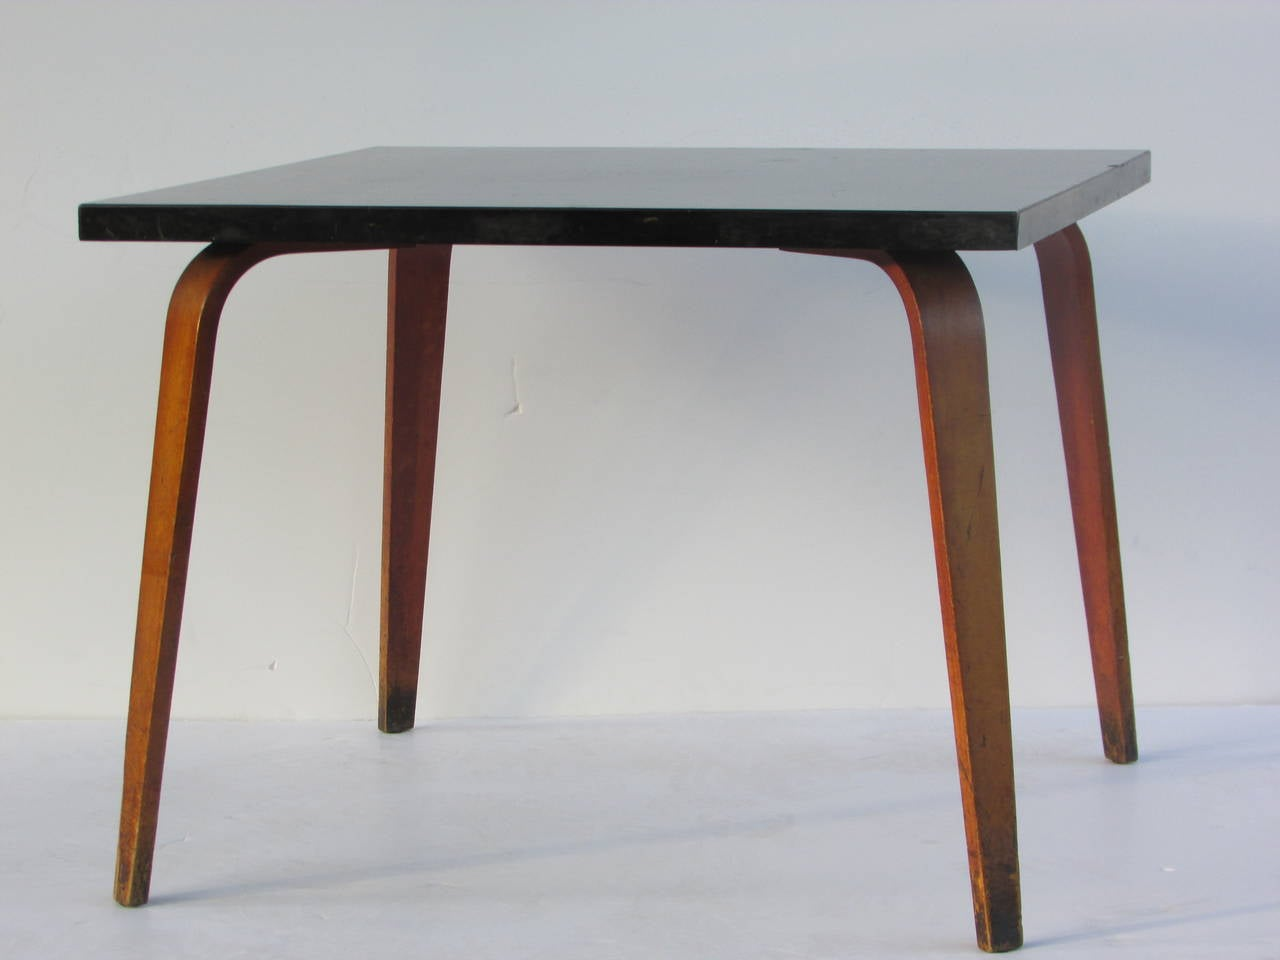 Thonet bentwood side table at 1stdibs for Table thonet